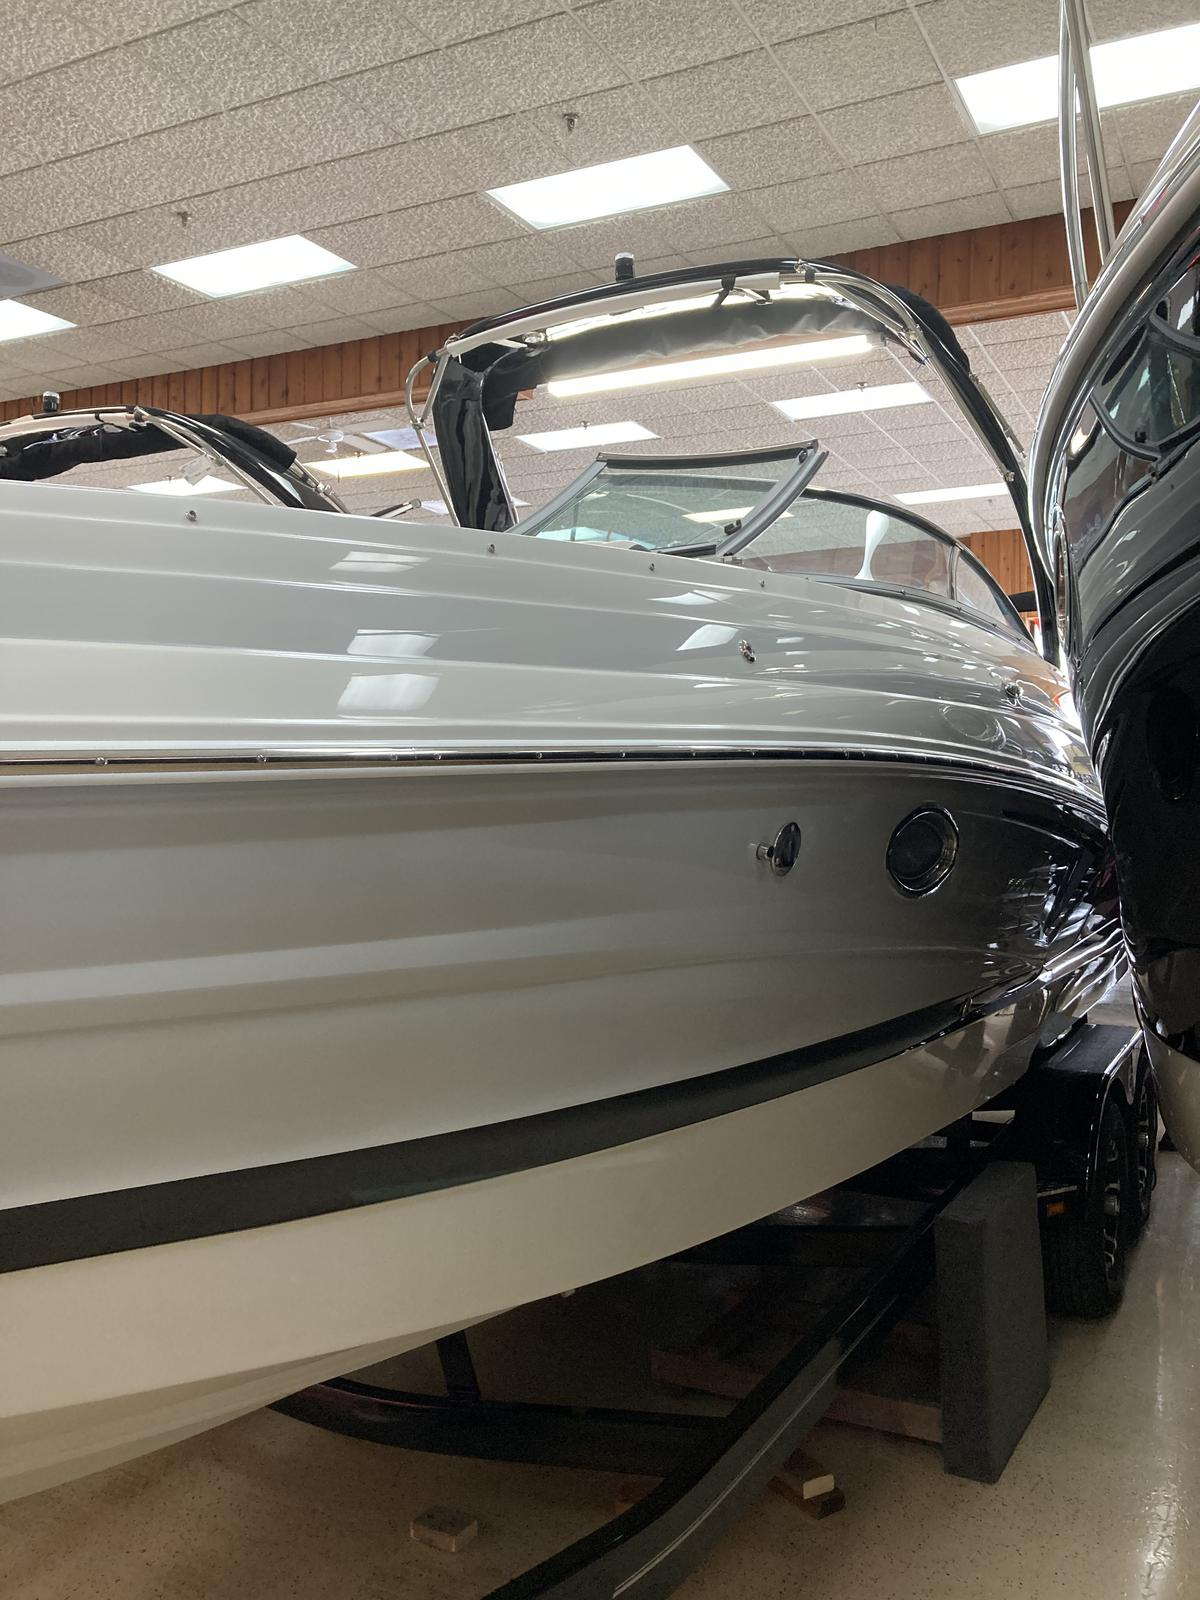 2021 Crownline boat for sale, model of the boat is 290 SS & Image # 7 of 7